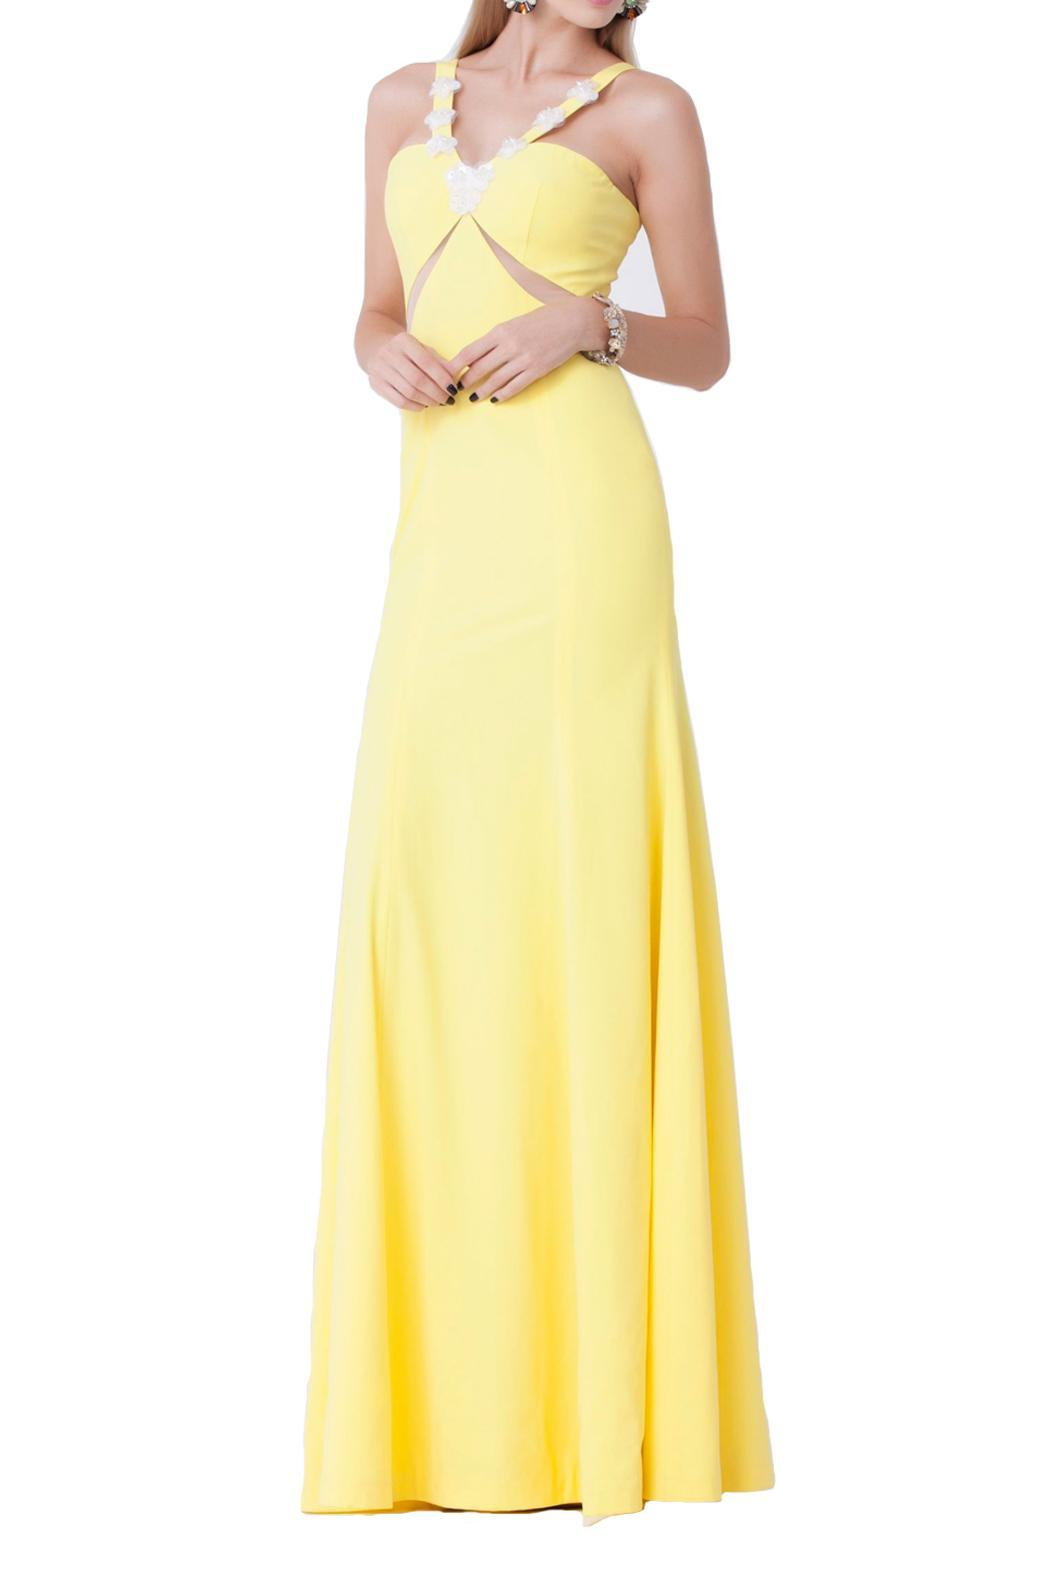 Isabel Garcia Maxi Yellow Dress - Front Cropped Image